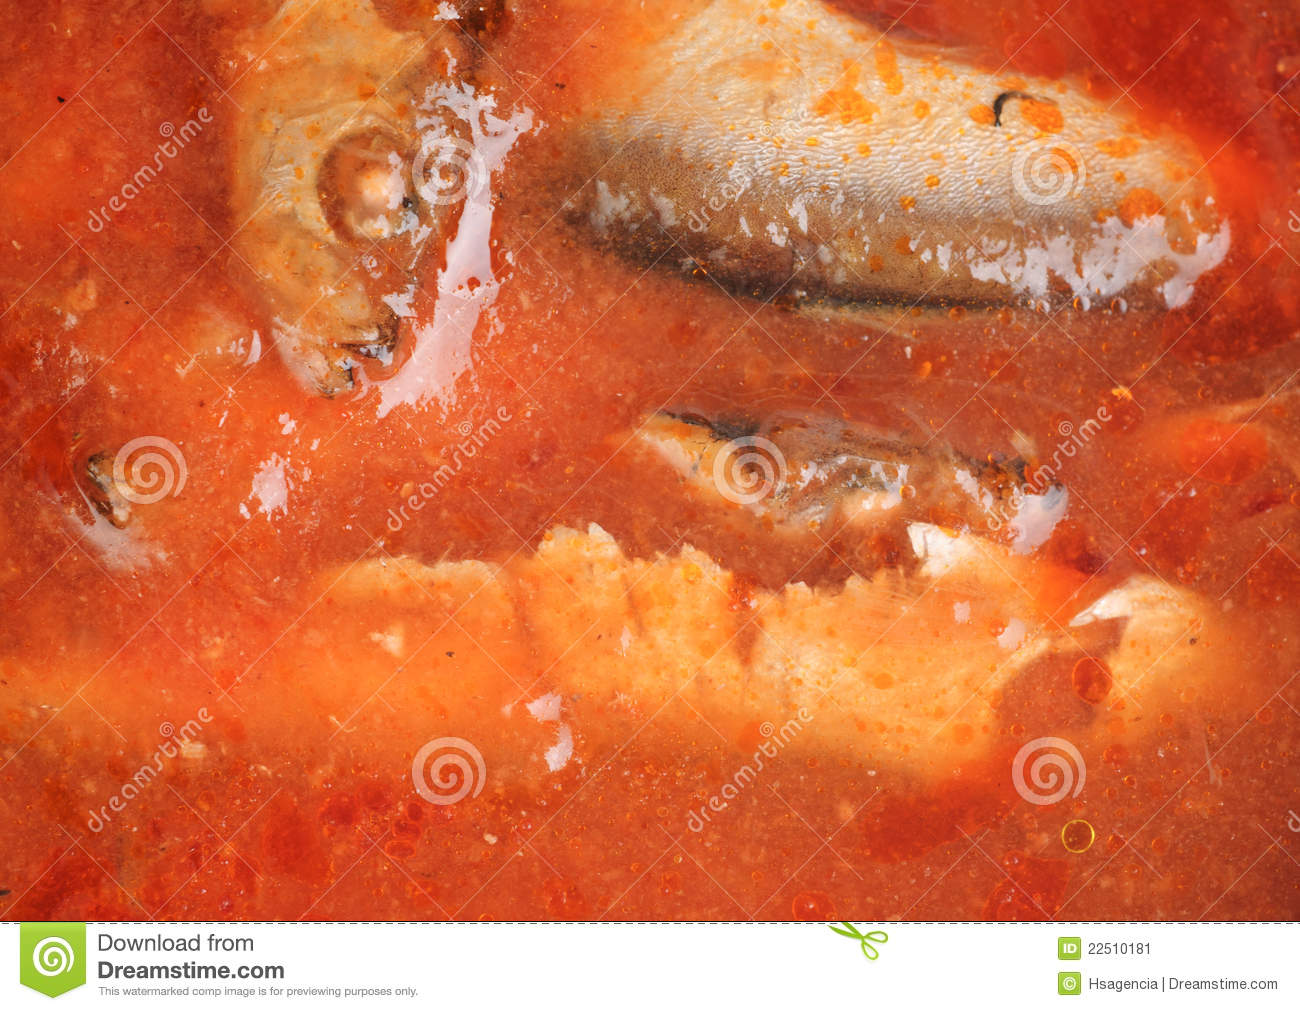 Fish In Tomato Sauce Stock Image - Image: 22510181